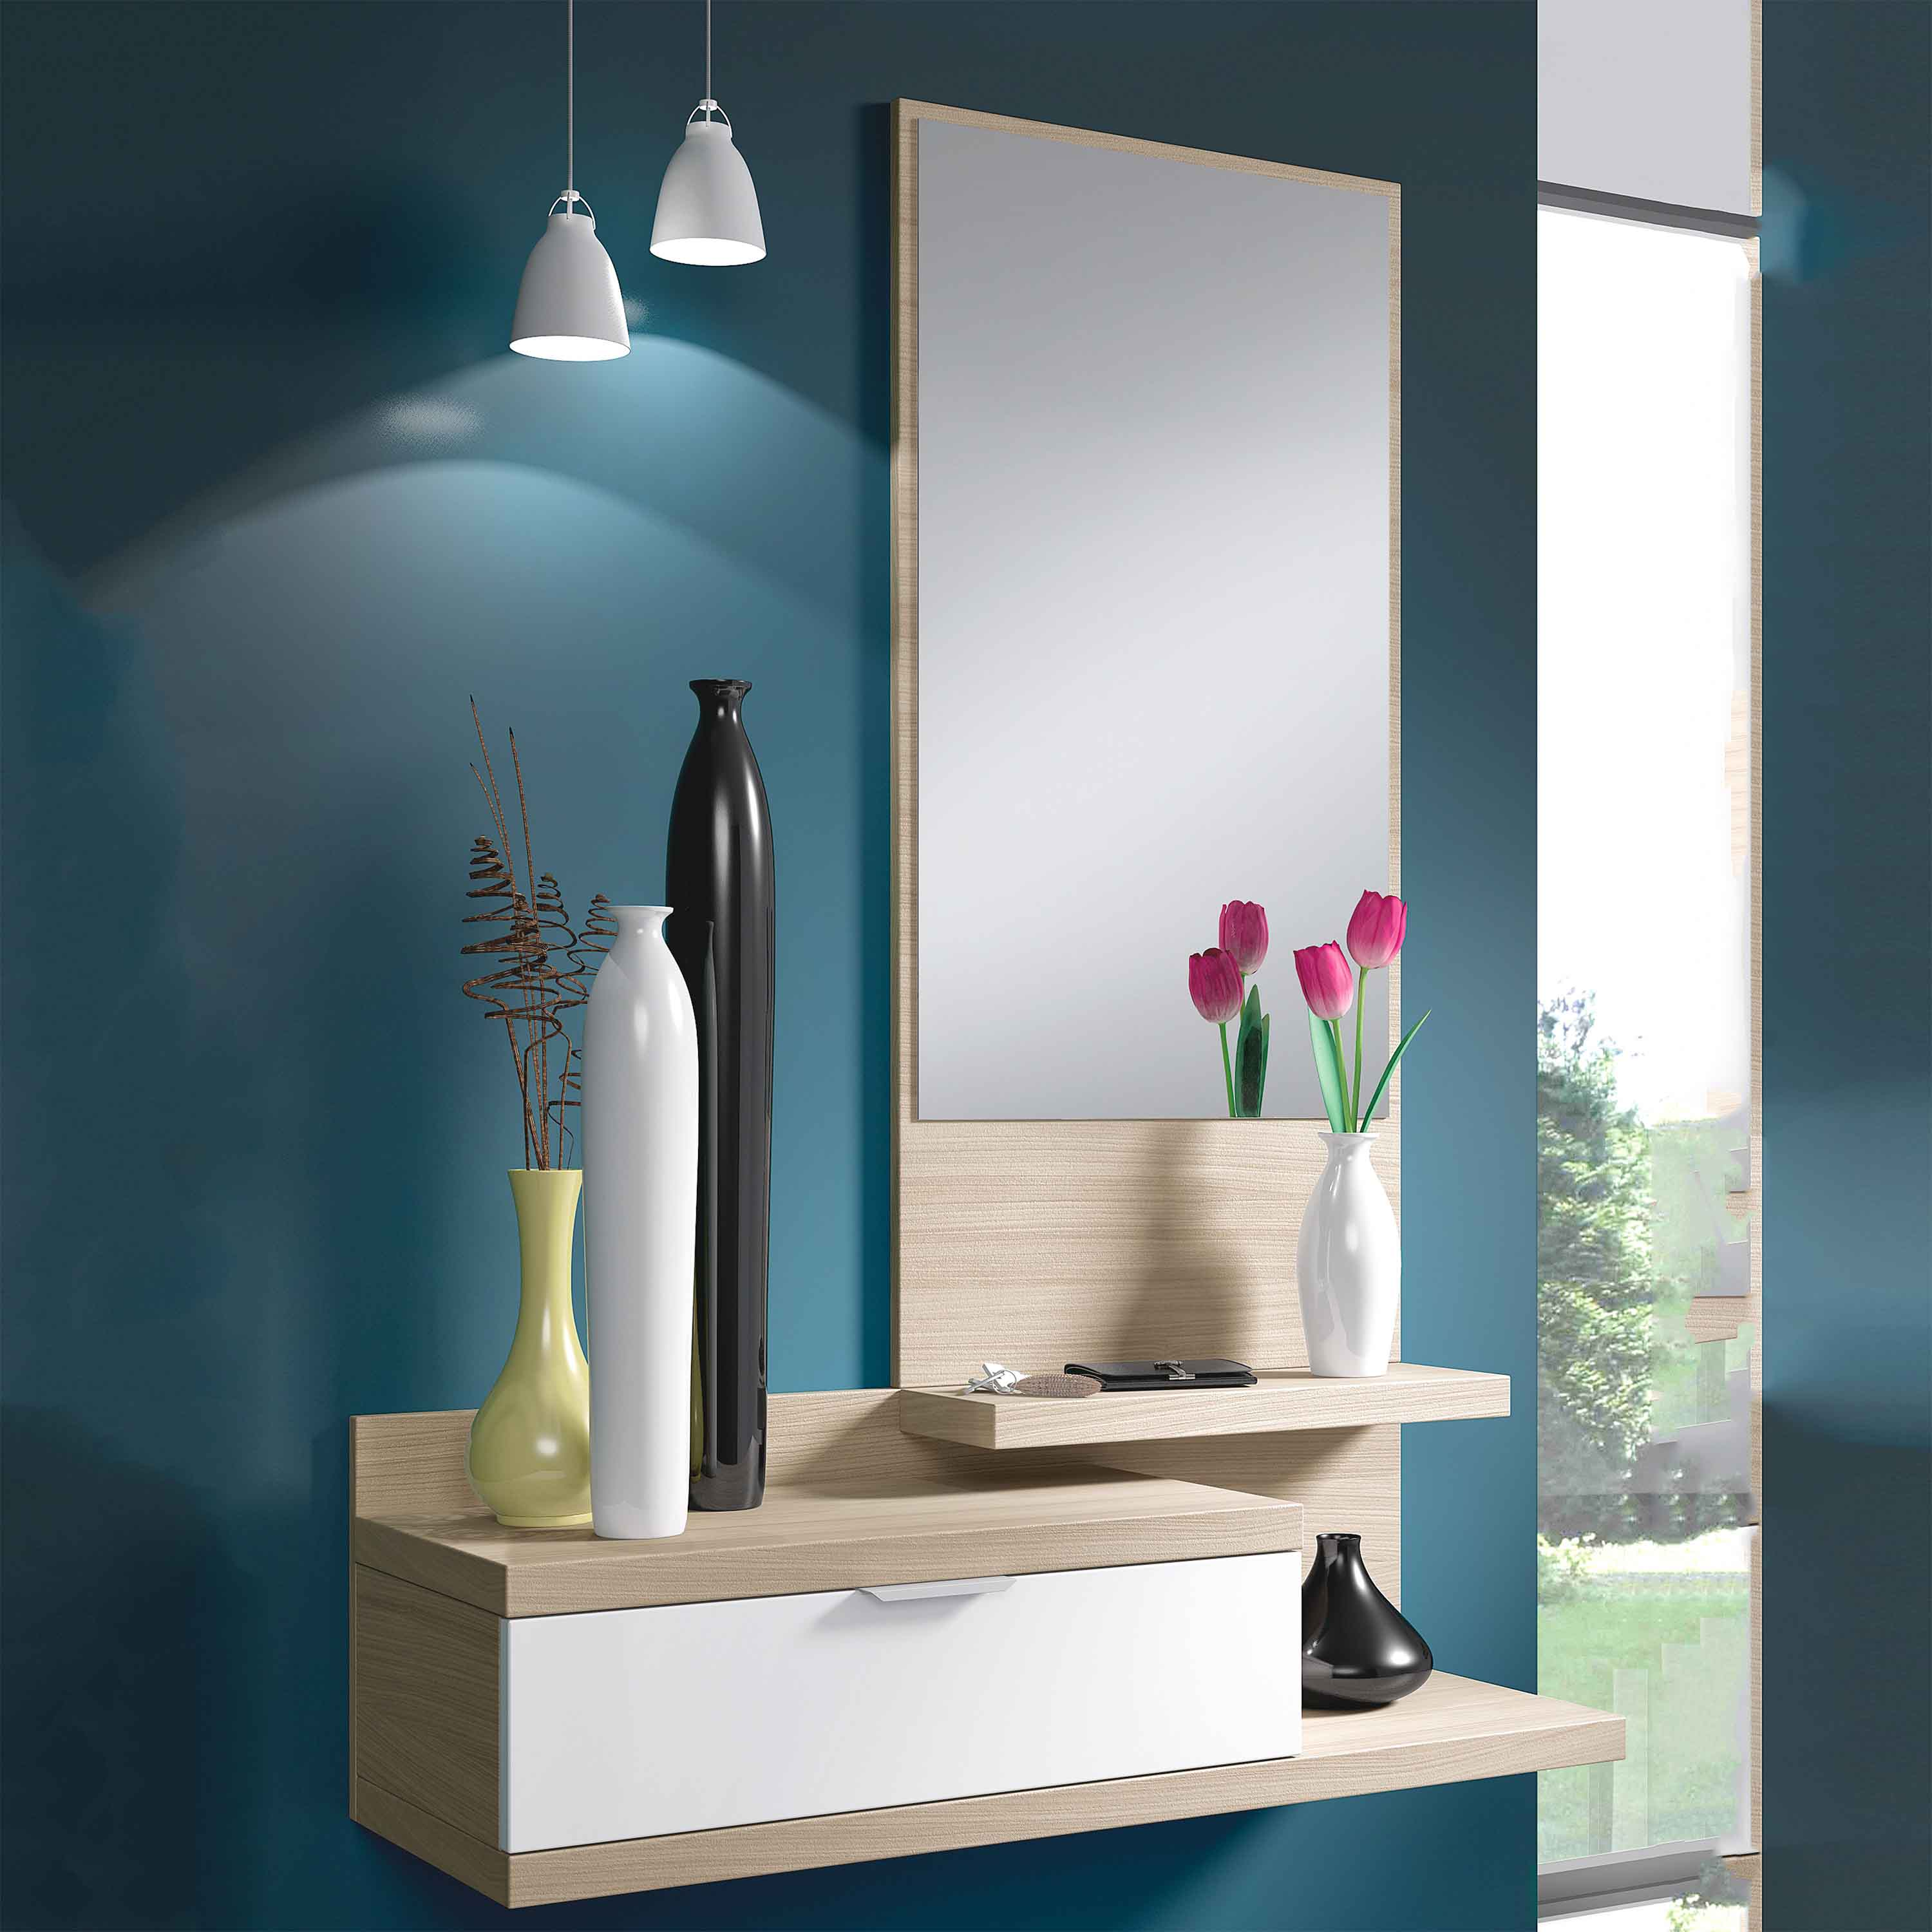 Mirrors – Consolles – Vanity table